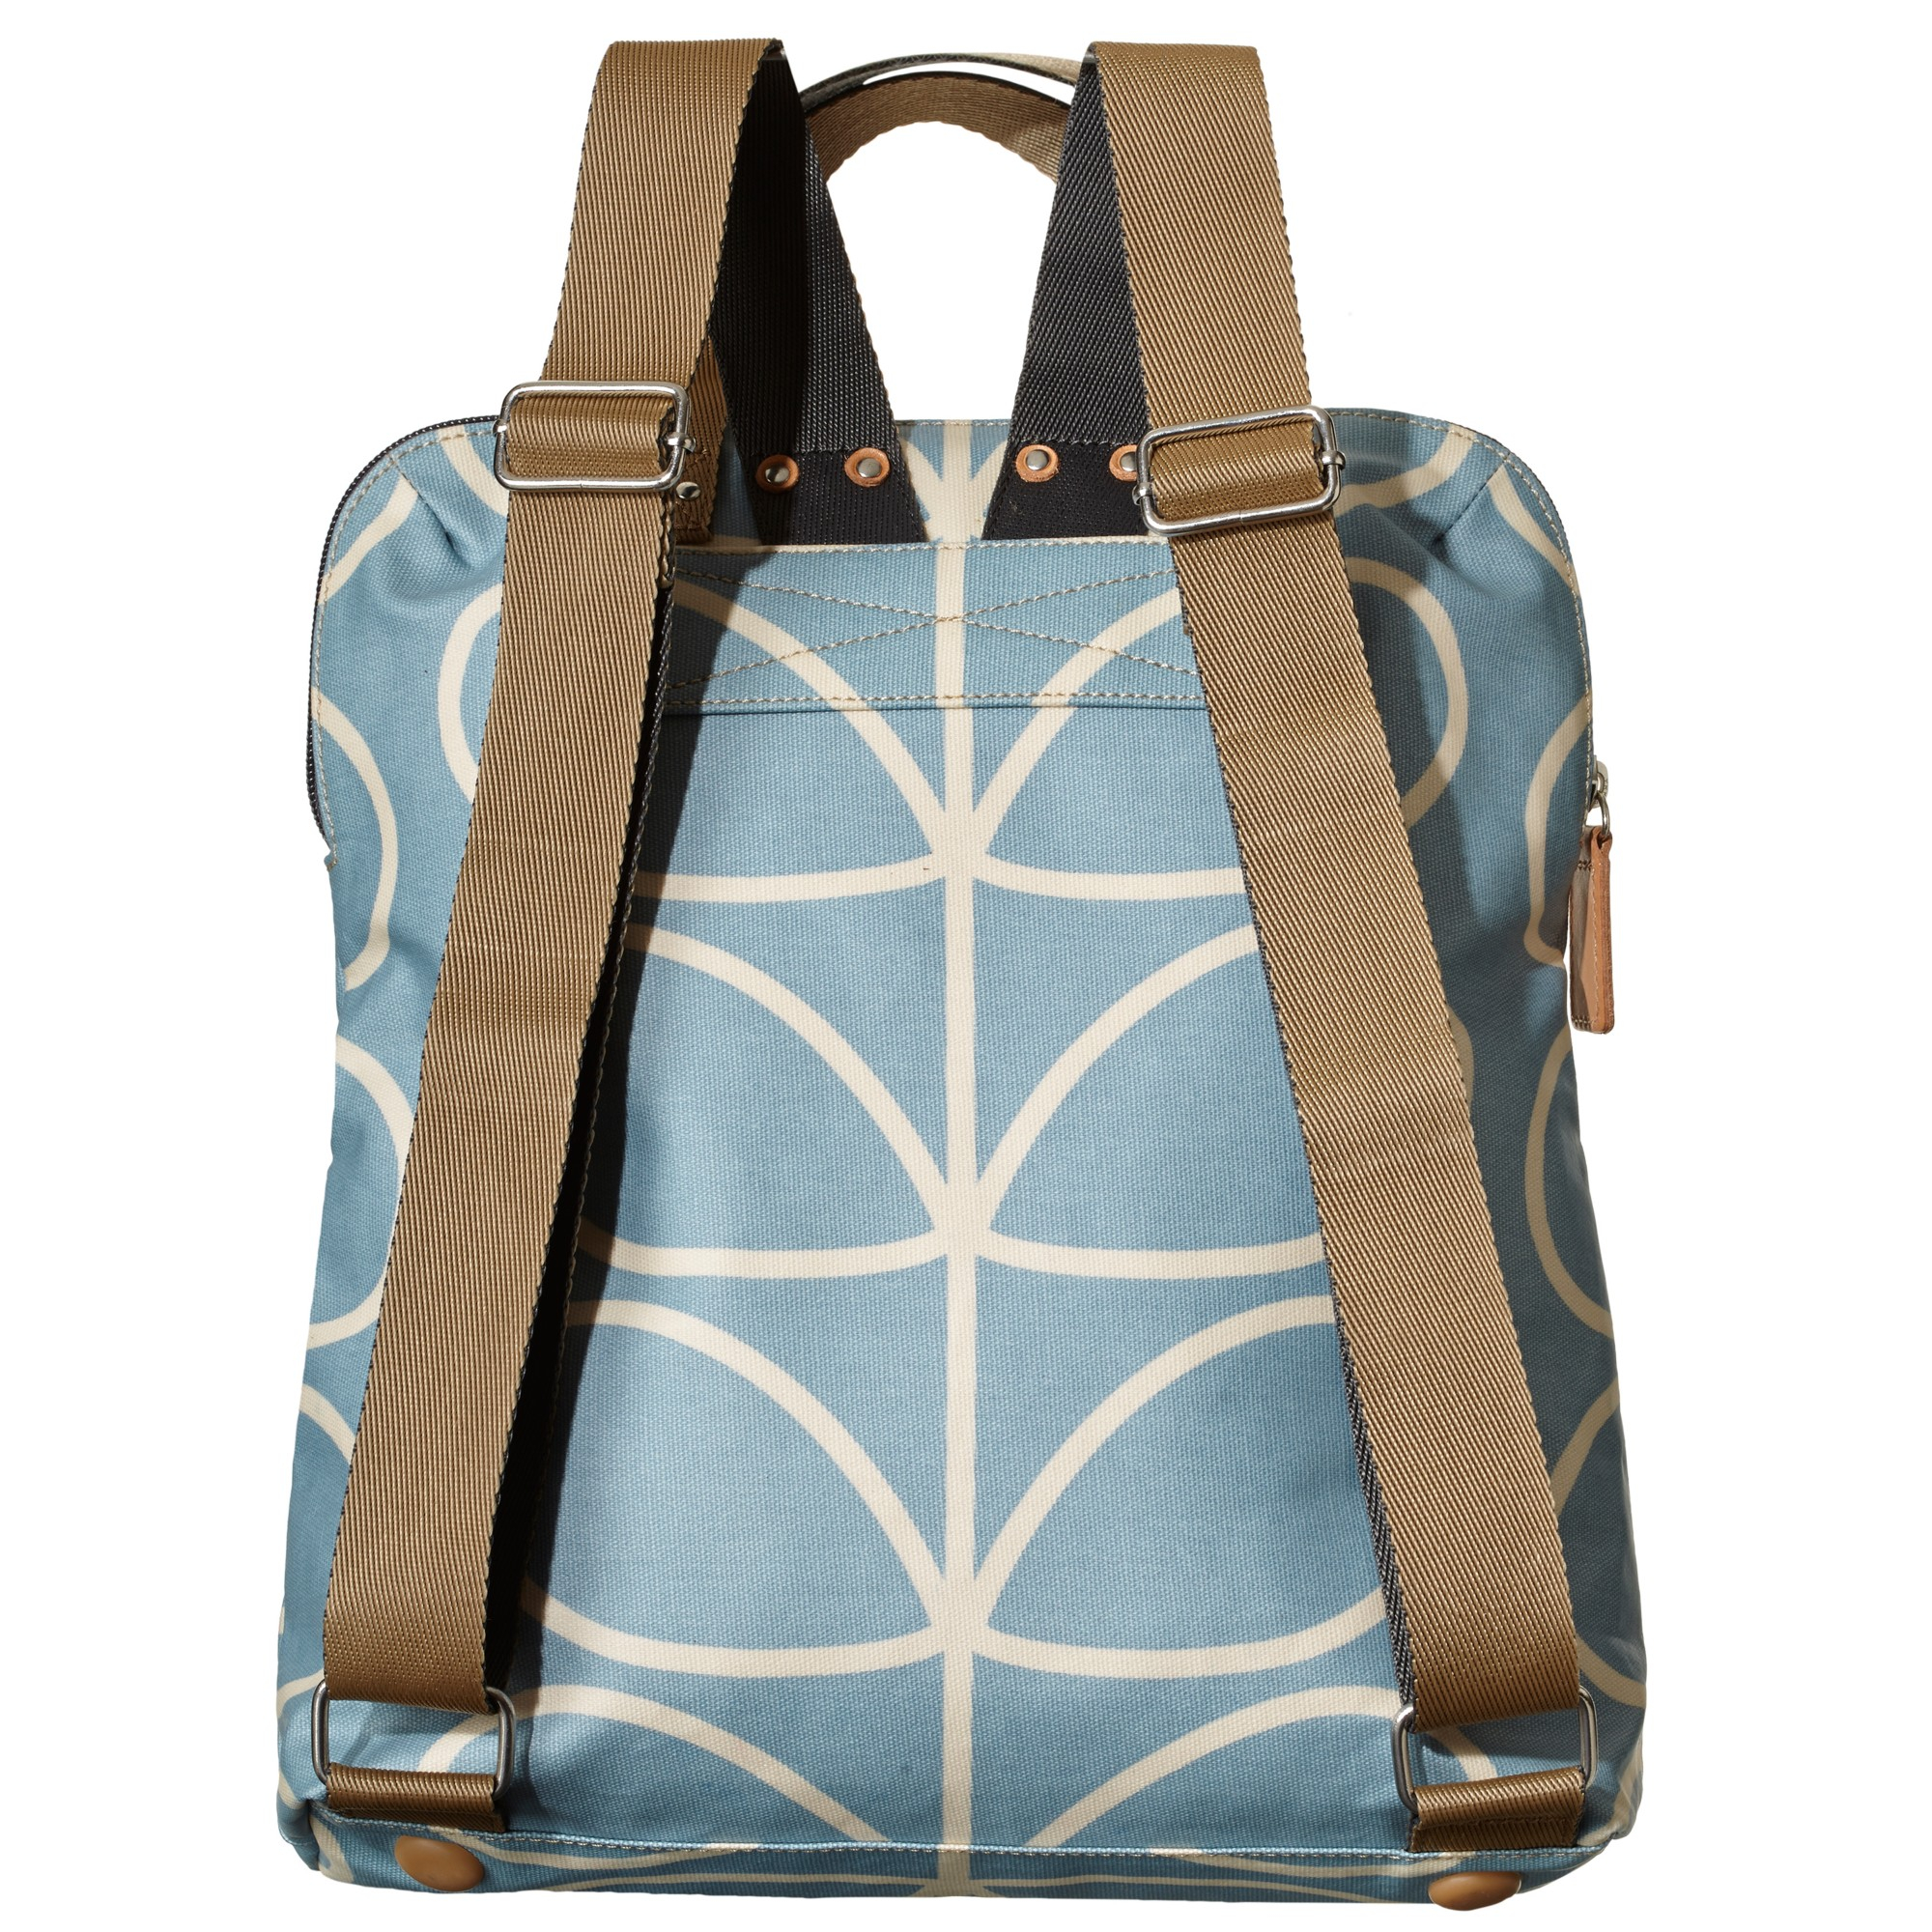 Orla Kiely Giant Linear Stem Print Backpack Tote in Blue - Lyst eed49bc2abc97